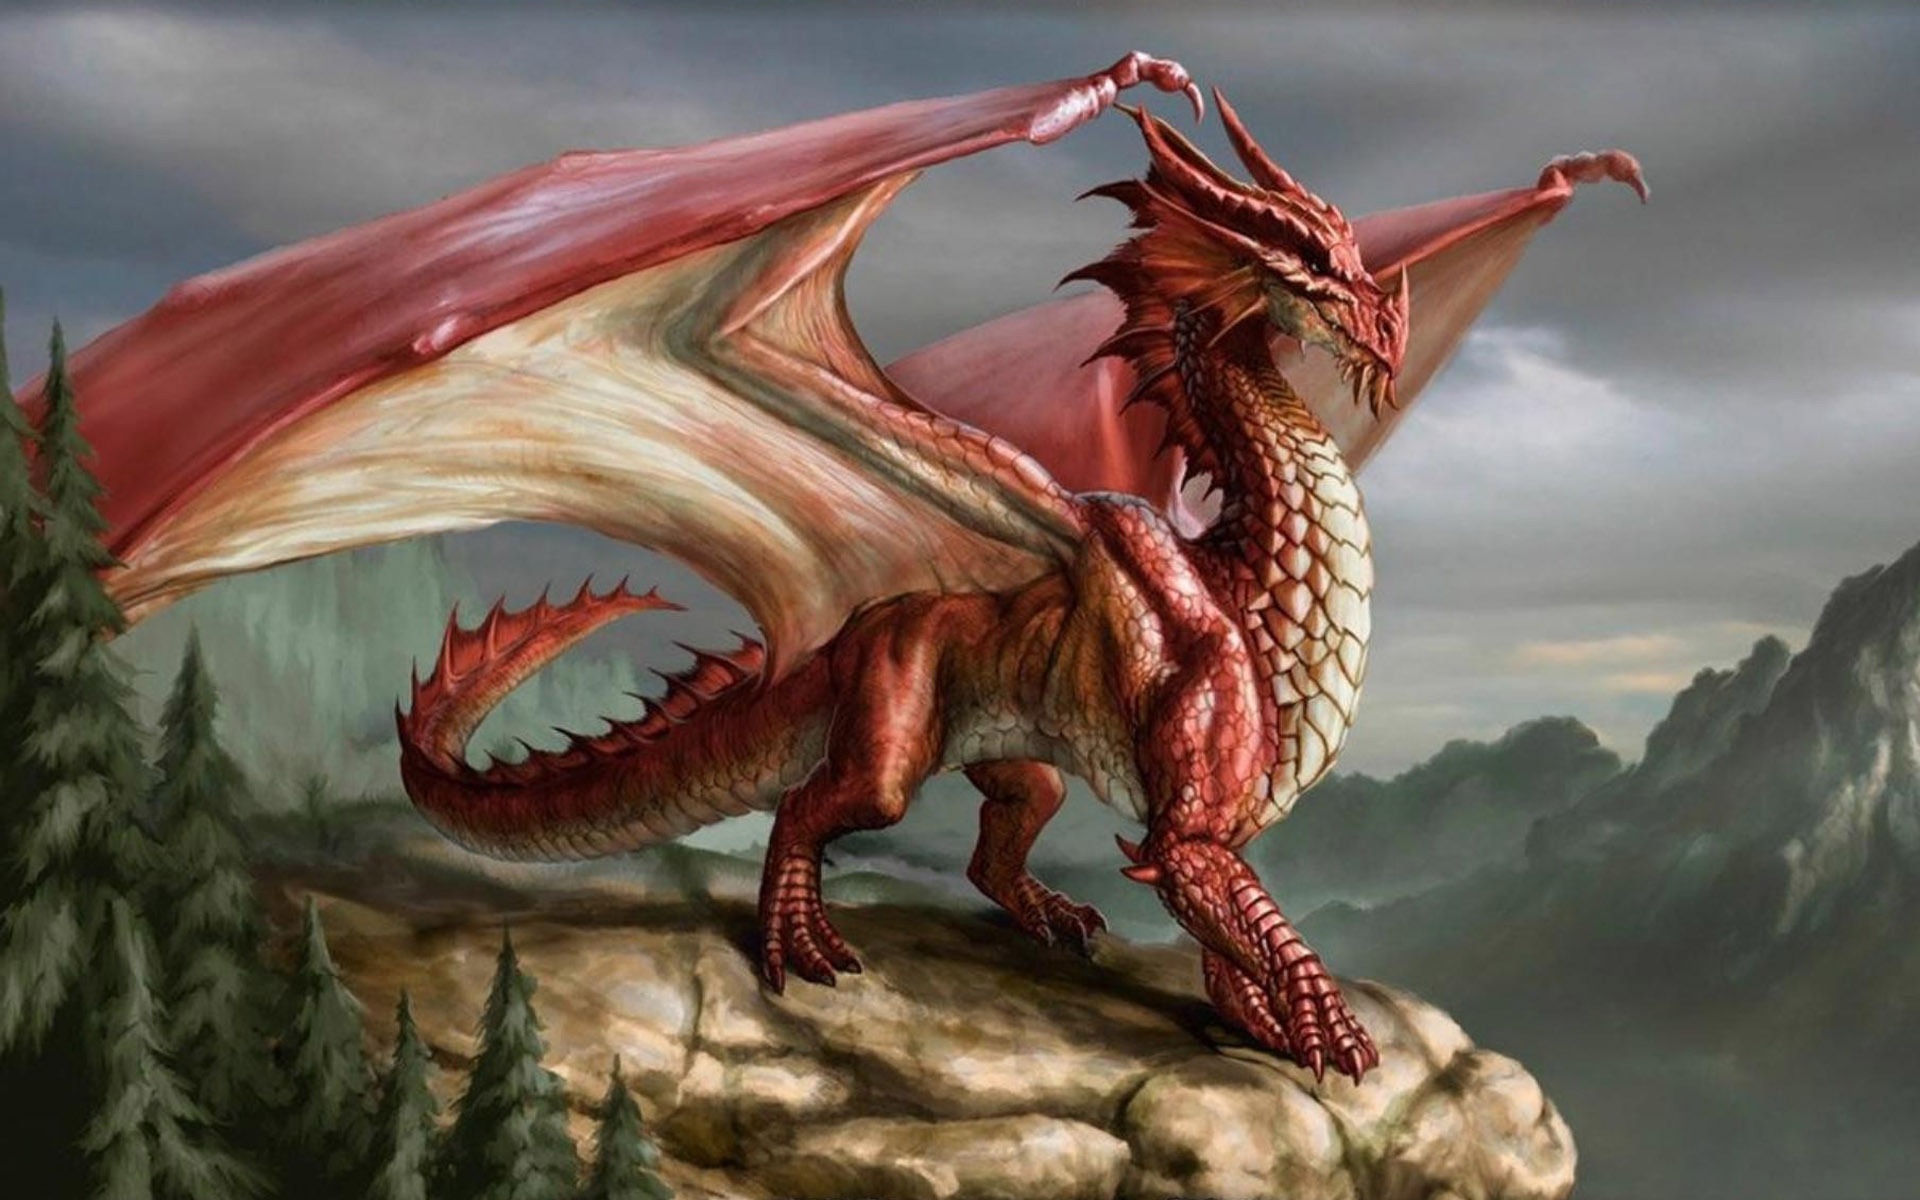 Red Dragon from a Tale